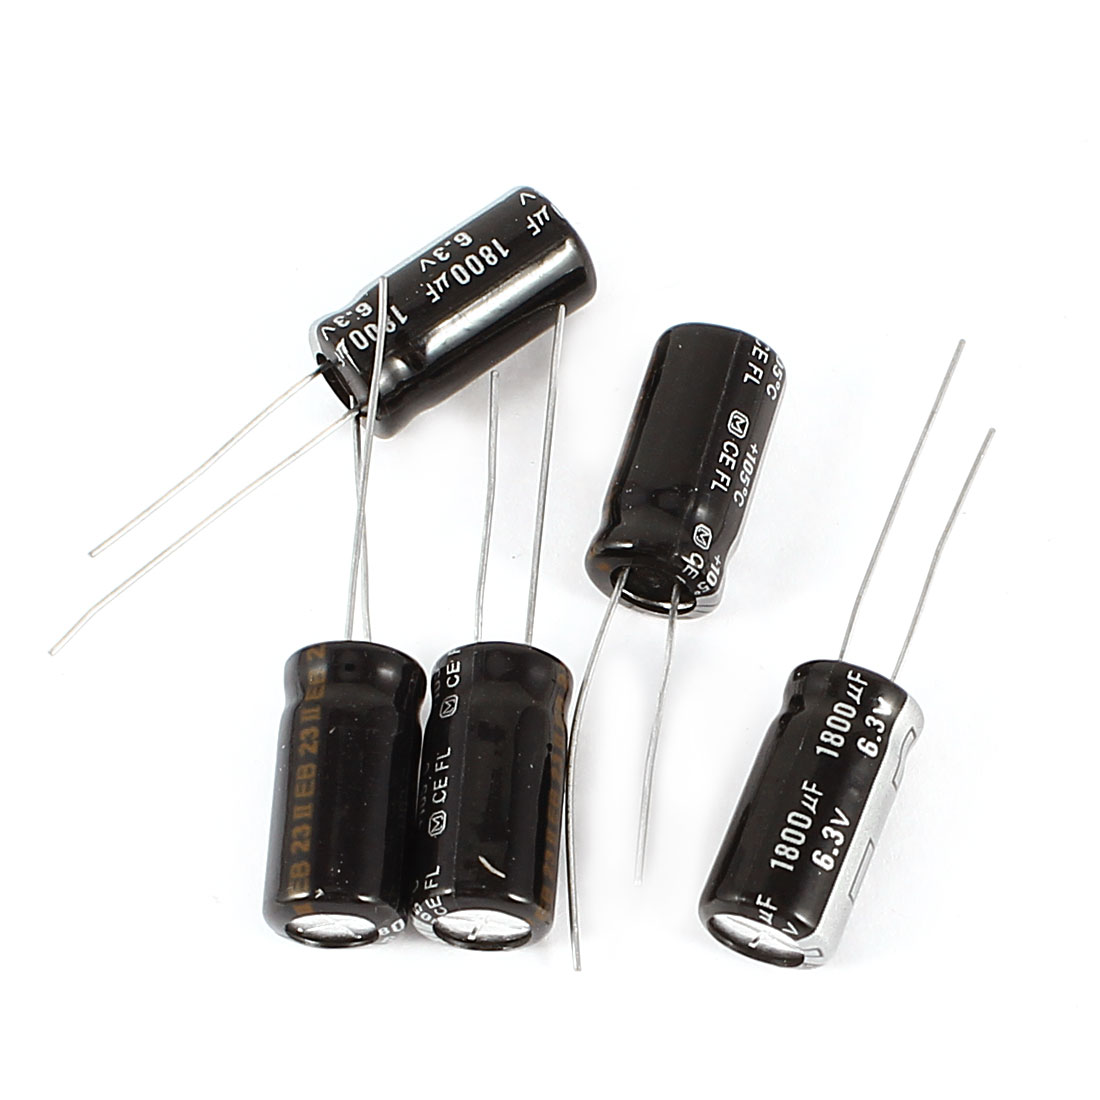 5 Pcs 1800uF DC 6.3V Radial Electrolytic Capacitor 8x16mm